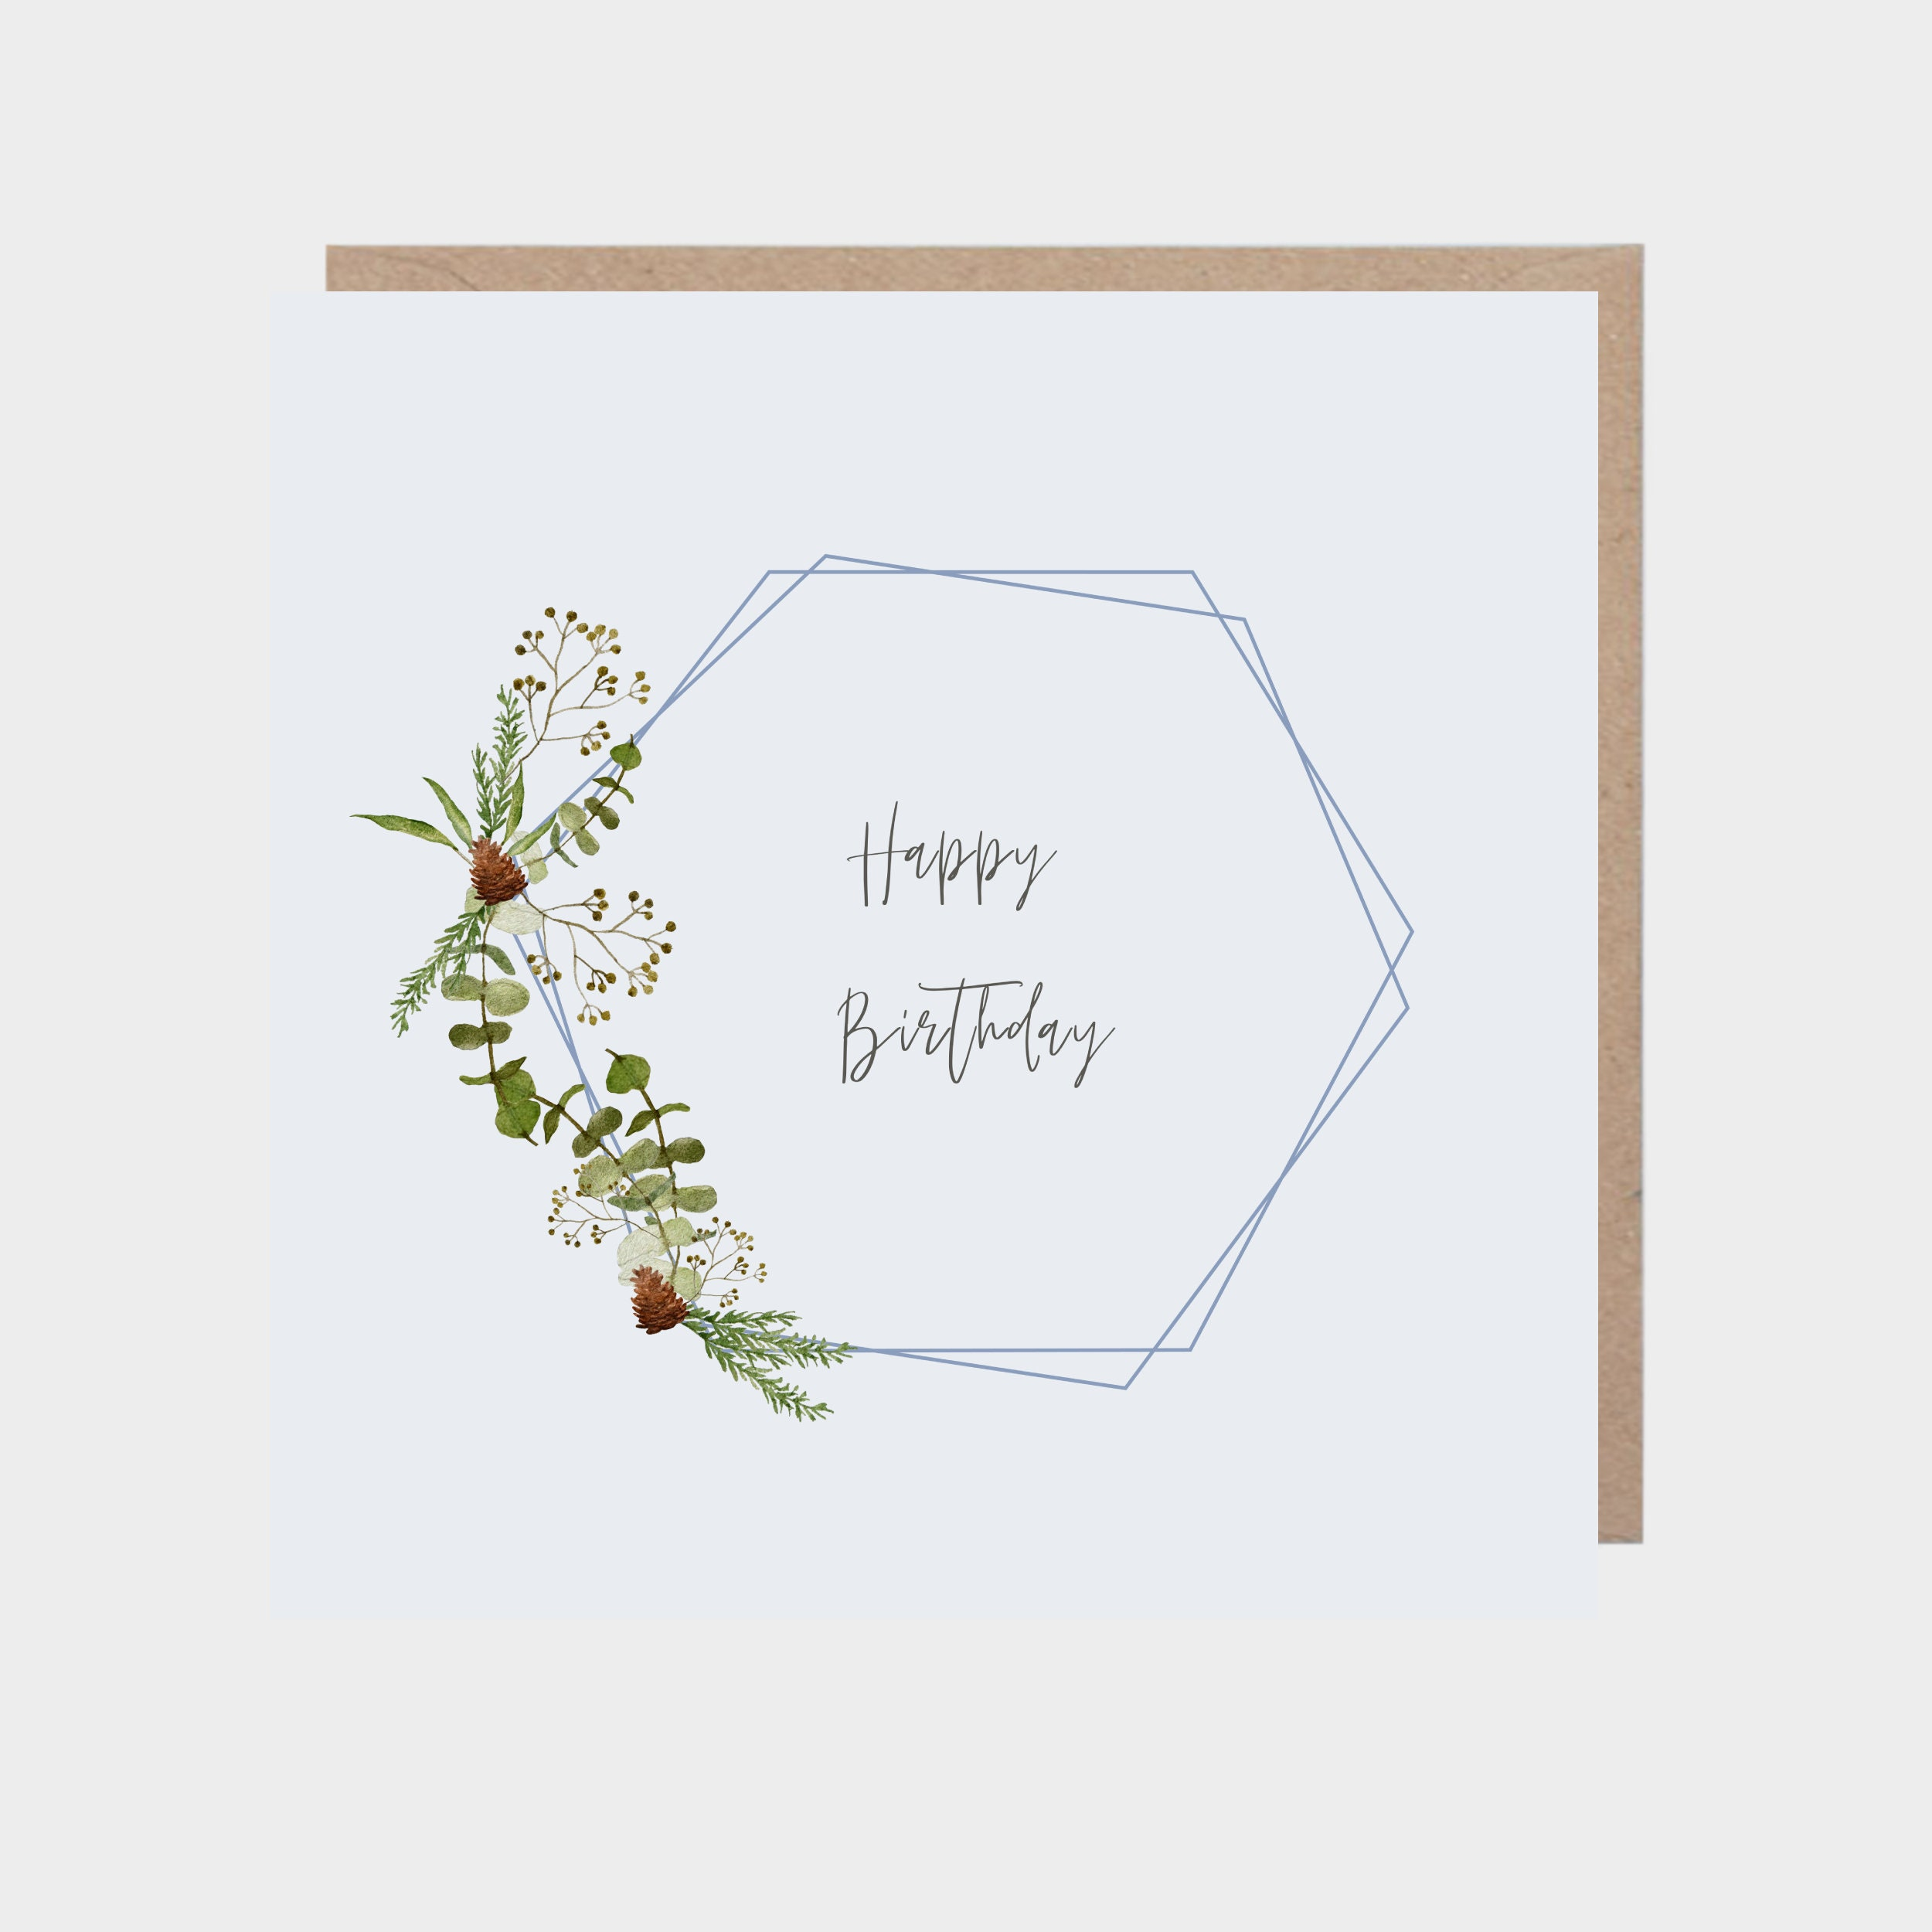 Square light blue card with a geometric winter leaves design, with a brown kraft envelope